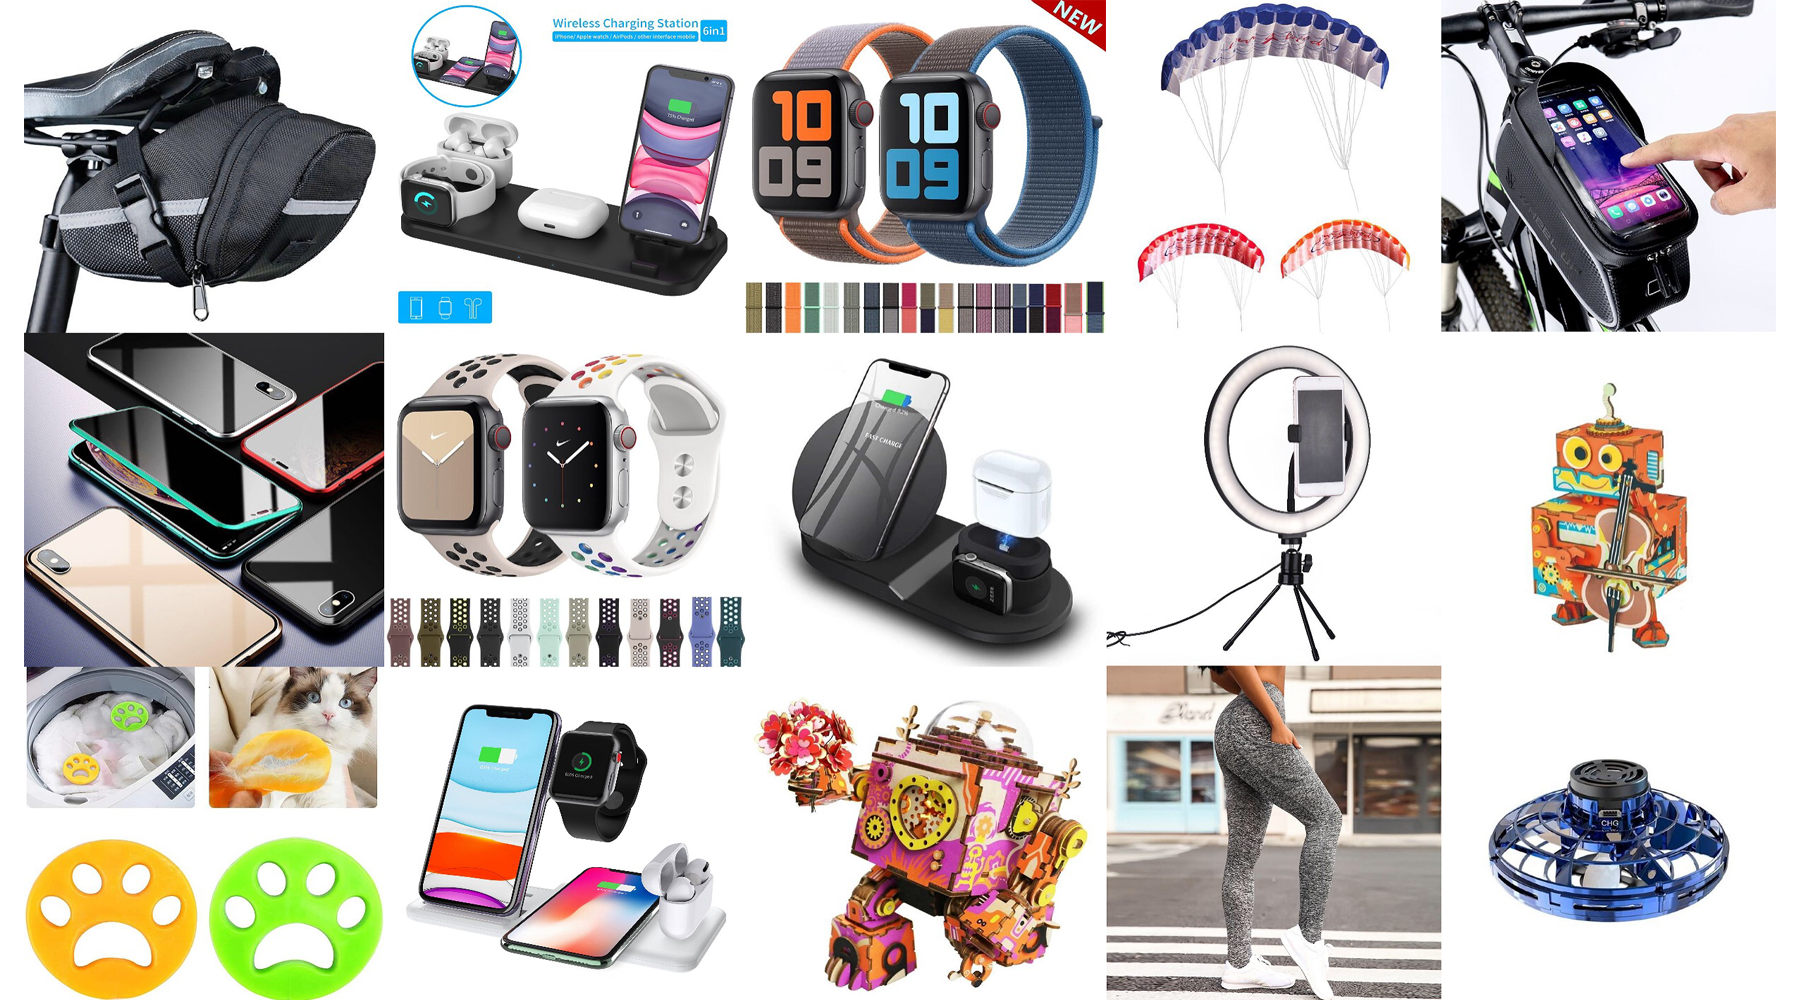 Hot Sale: Cycling Case or Pouch, Multifunctional Fast Wireless Smart Charger, iPhone Watch Band Straps, Magnetic iPhone Cases, Wooden Puzzles, Robots, Leggings, Mini Drone, LED Selfie Lightings, Dual Line Stunt Kites, Pet Hair Washing Machine Collector